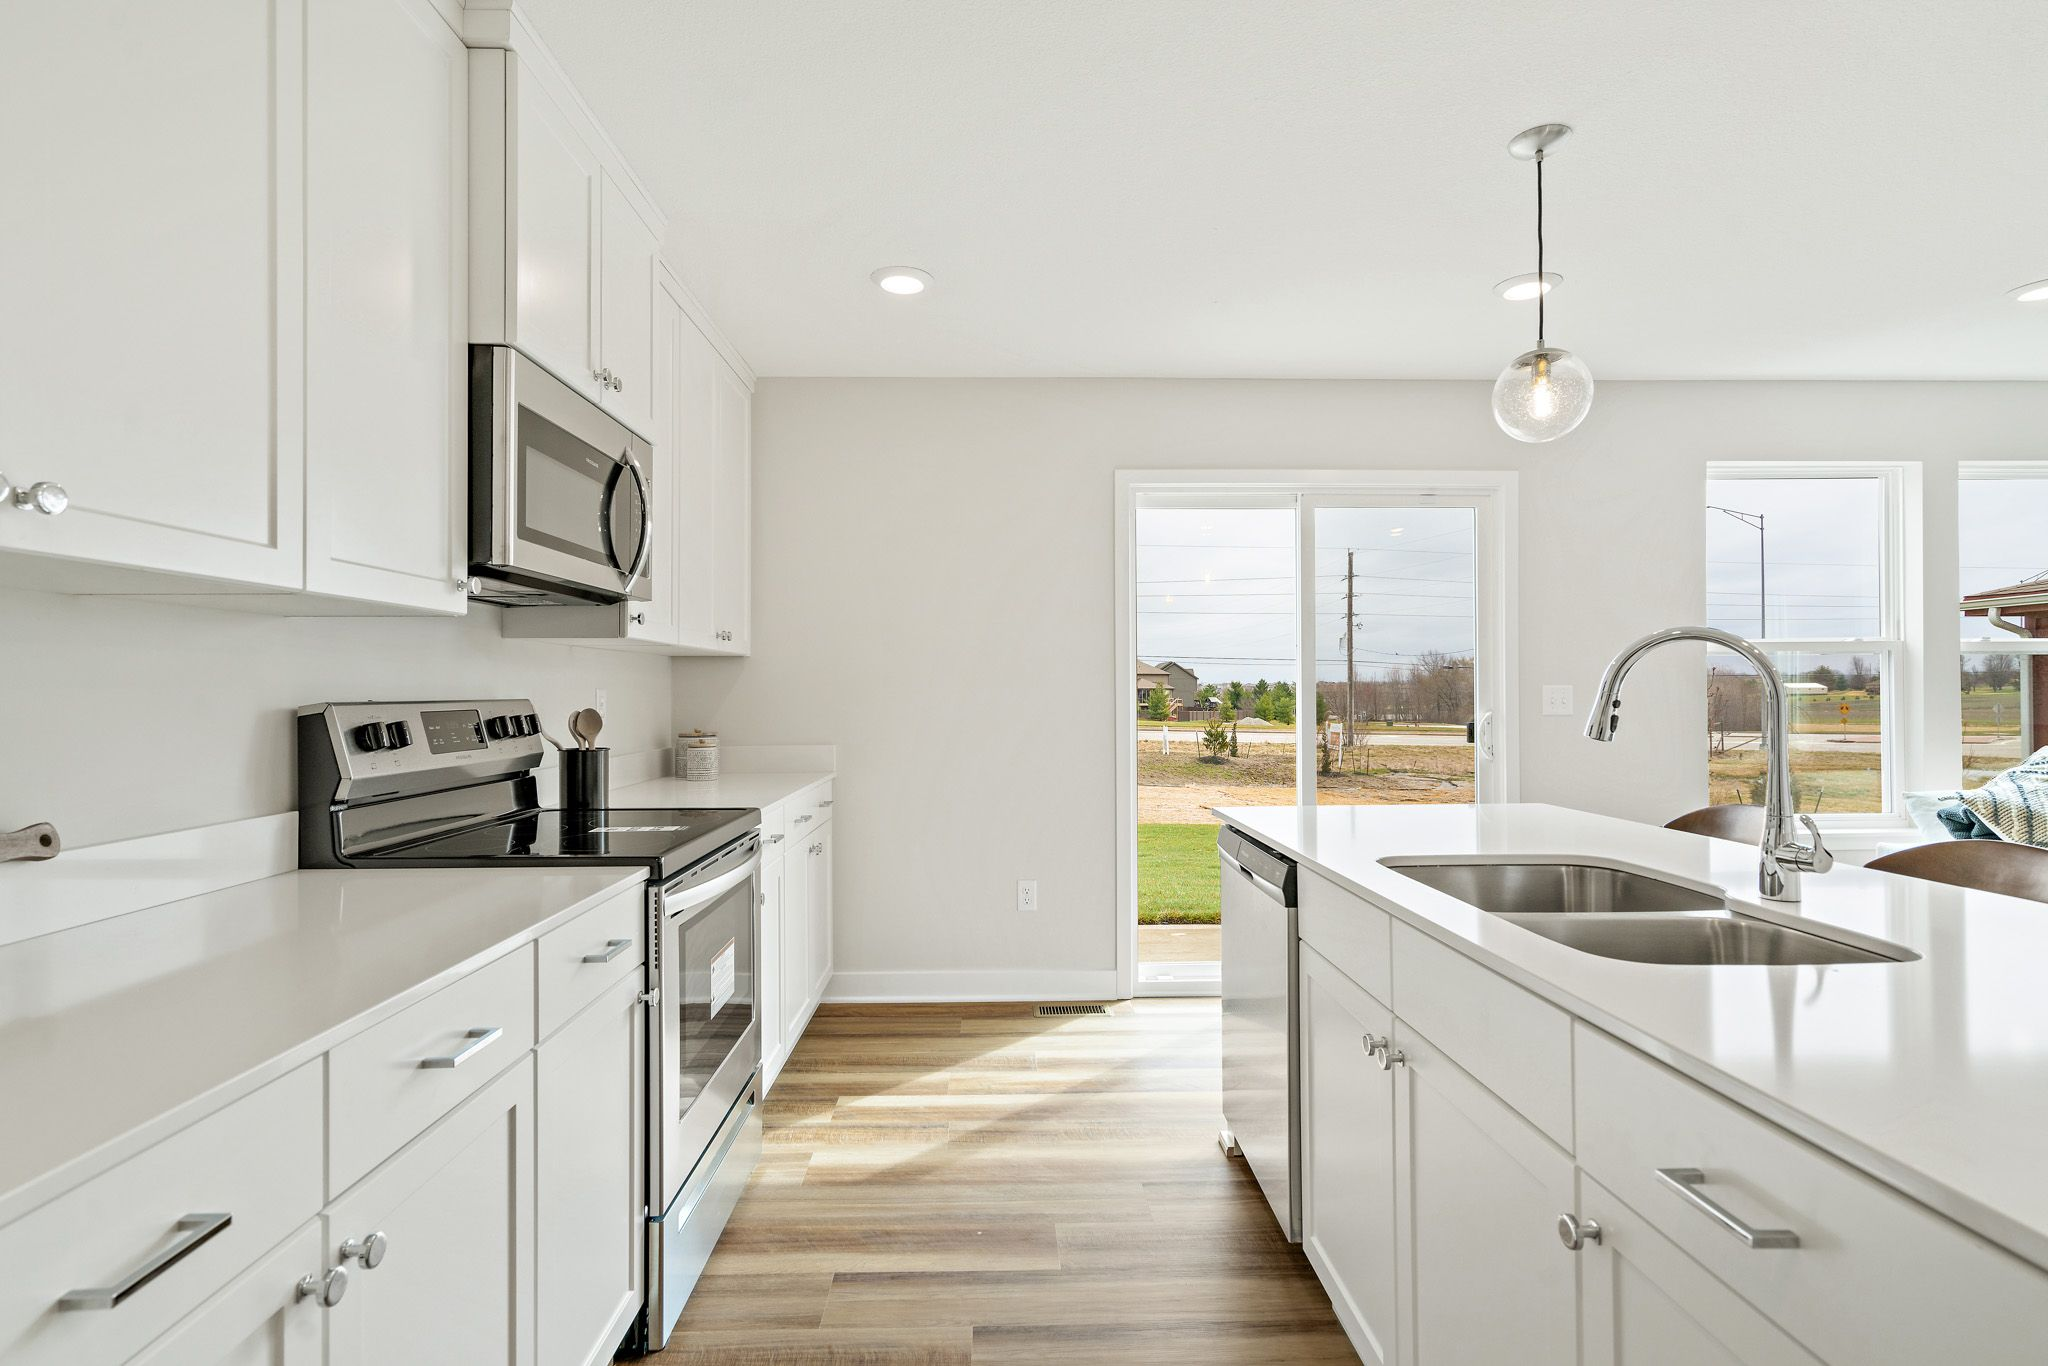 Kitchen featured in the indigo - contemporary By clover & hive in Kansas City, MO